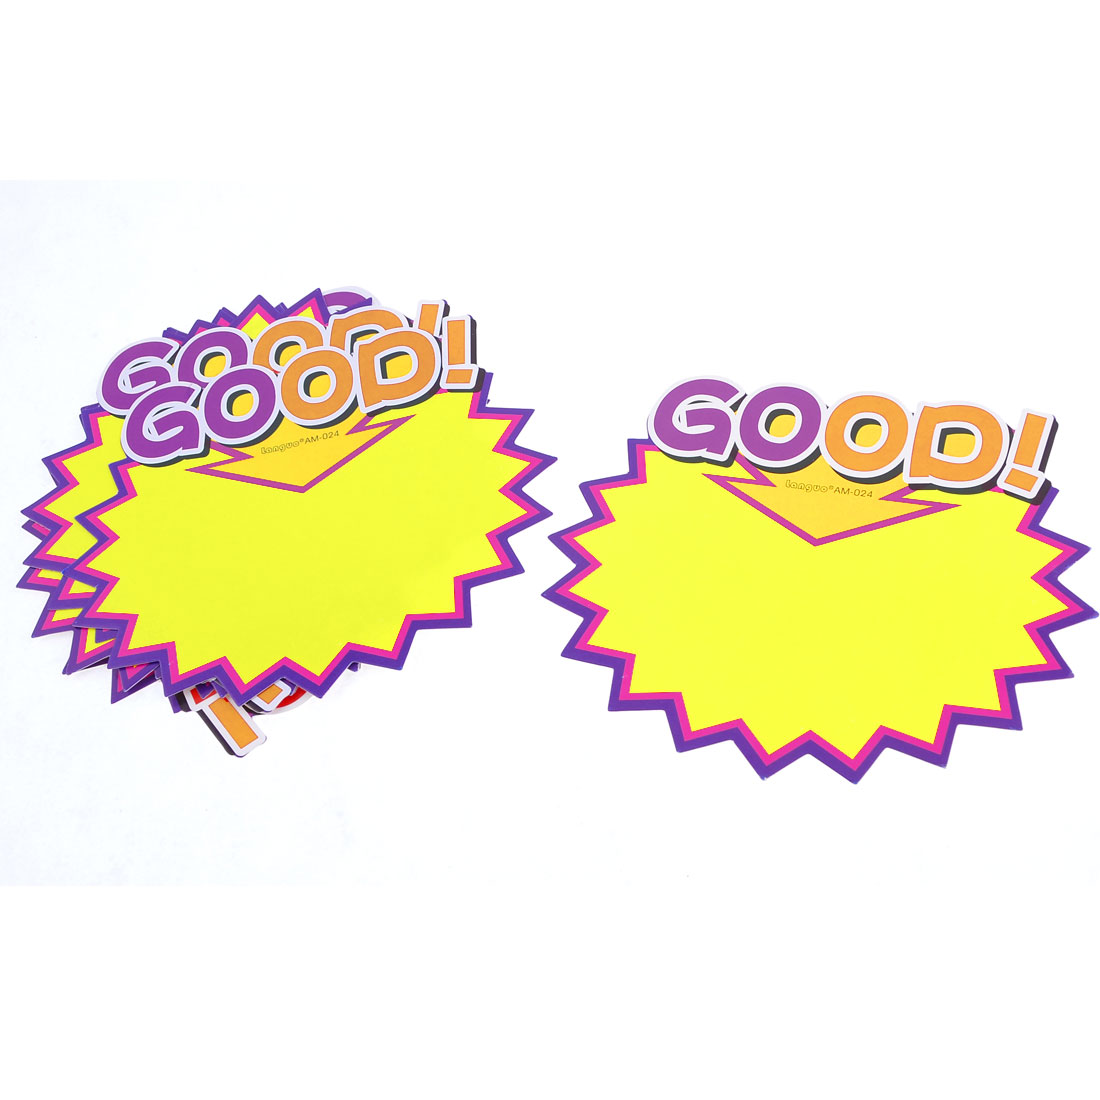 10 Pcs Store Good! Arrow Pattern Promotional Price Tags POP Cards Purple Yellow